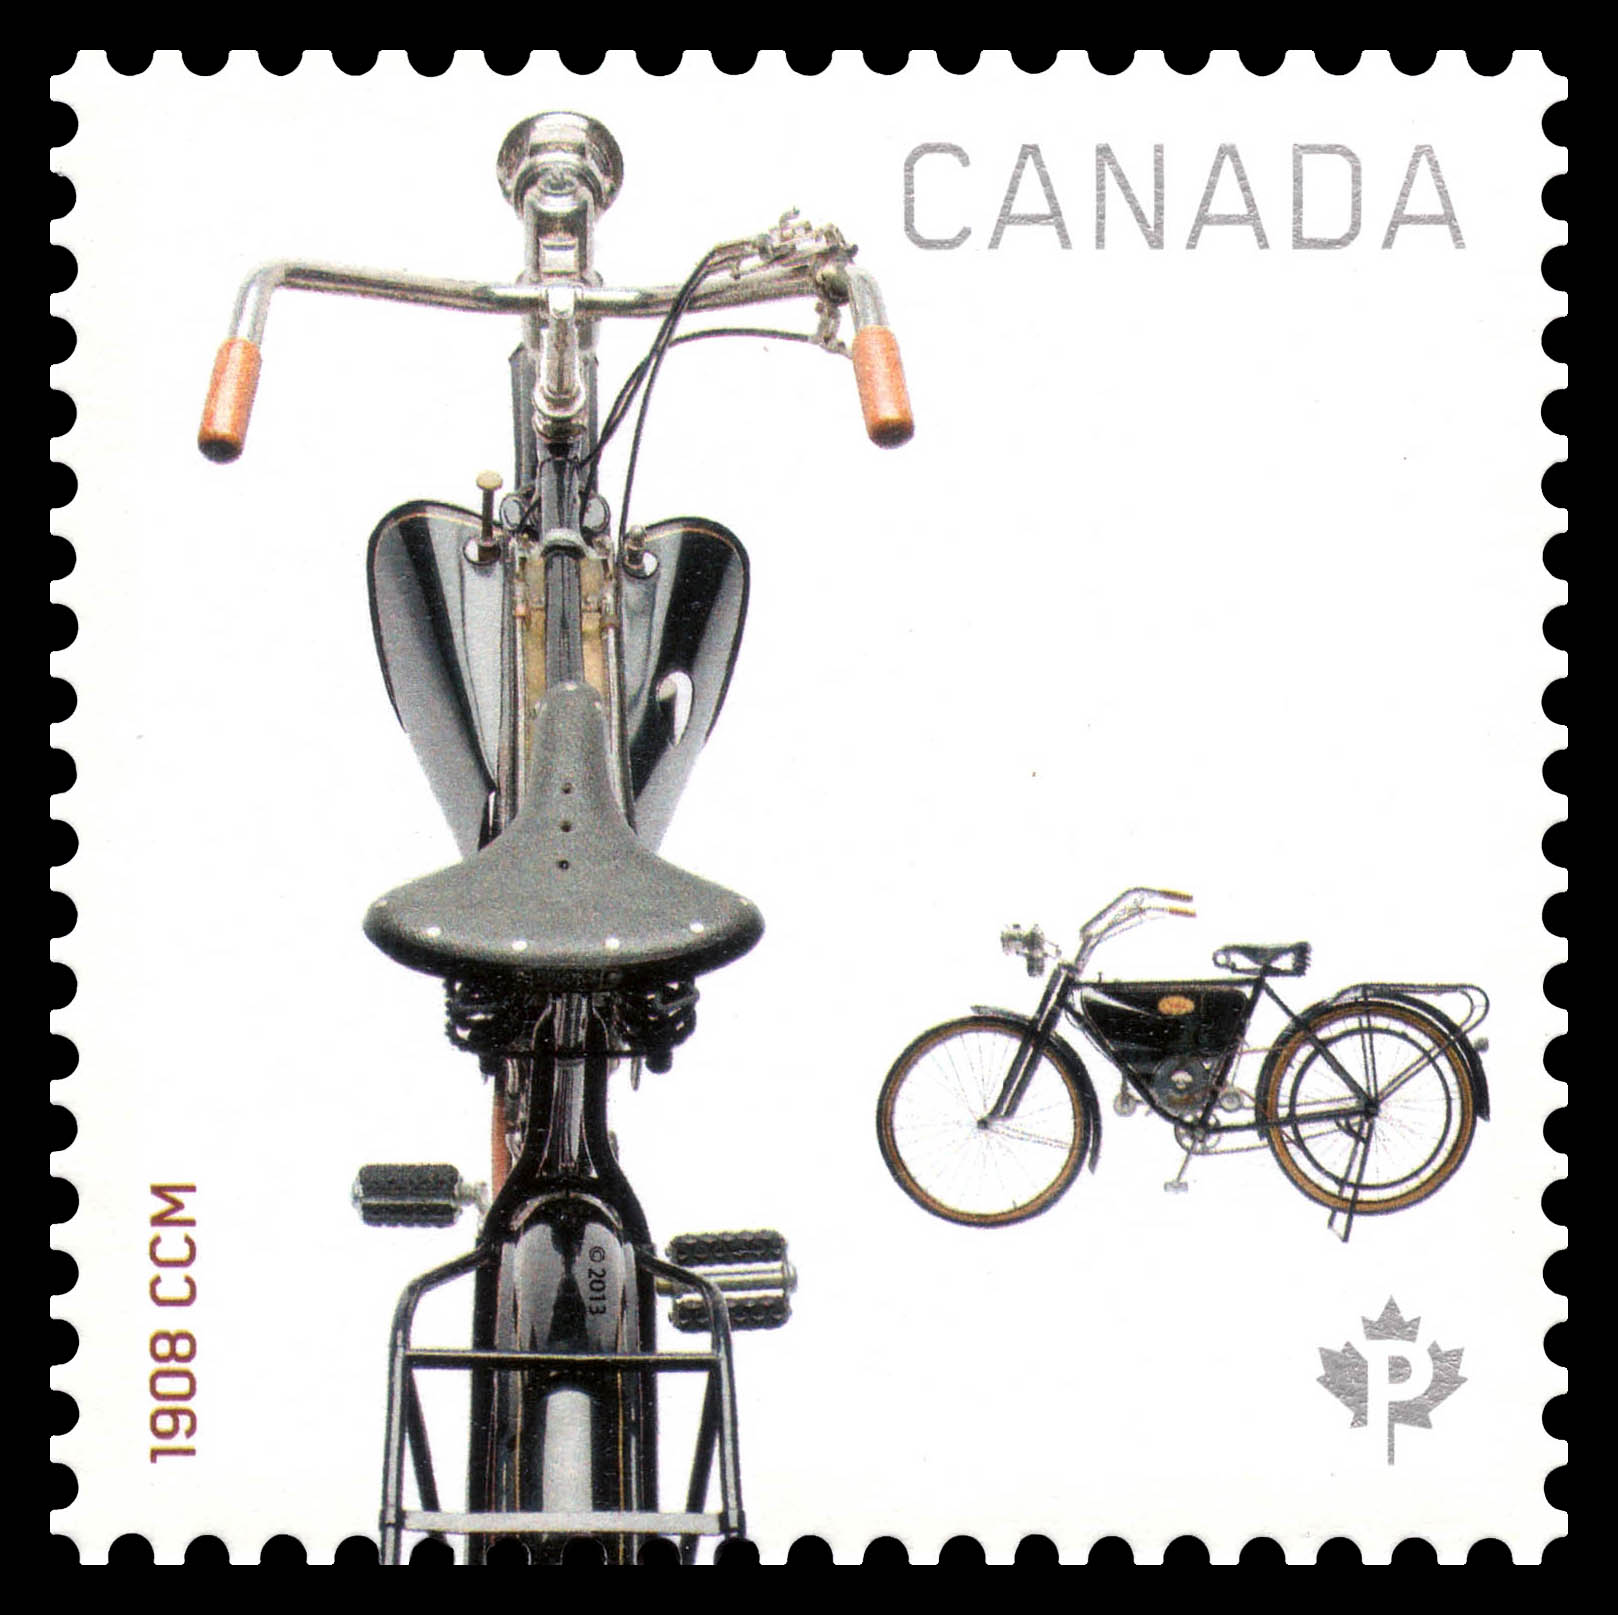 1908 CCM Motorcycle Canada Postage Stamp